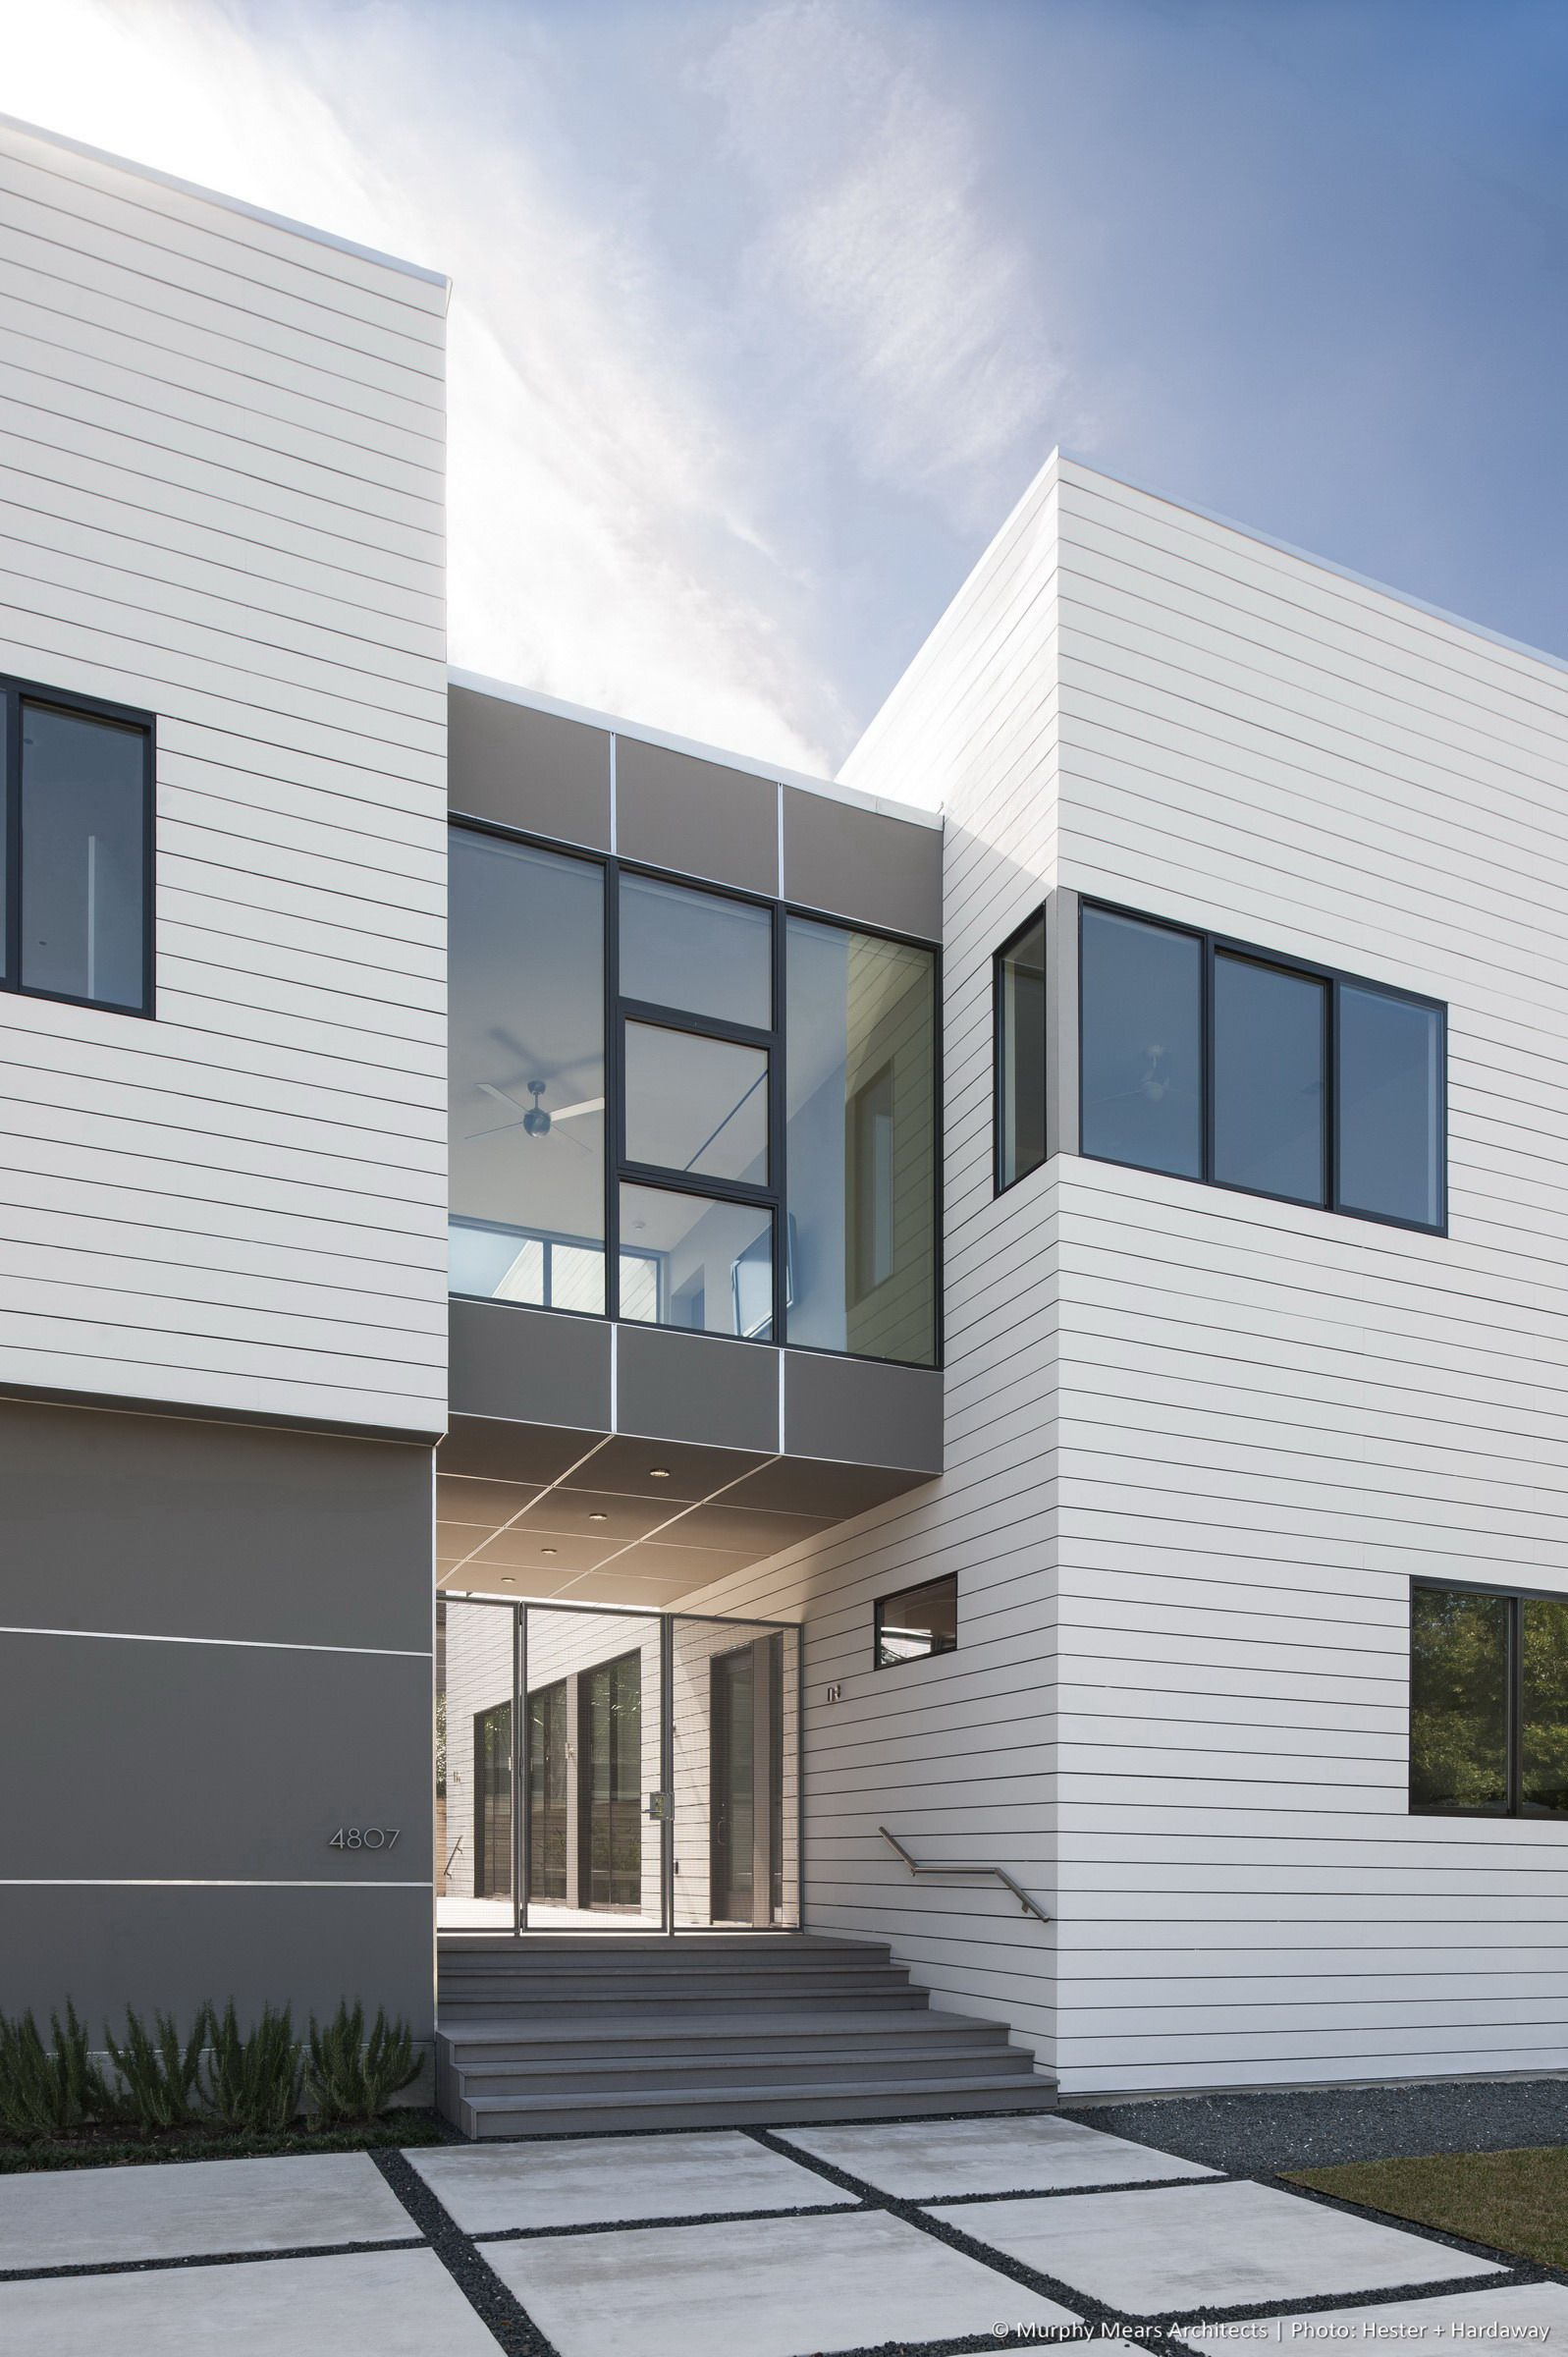 Hardie Panel With Hardie Board Siding Marvelous Materials Cement Siding Exterior Siding